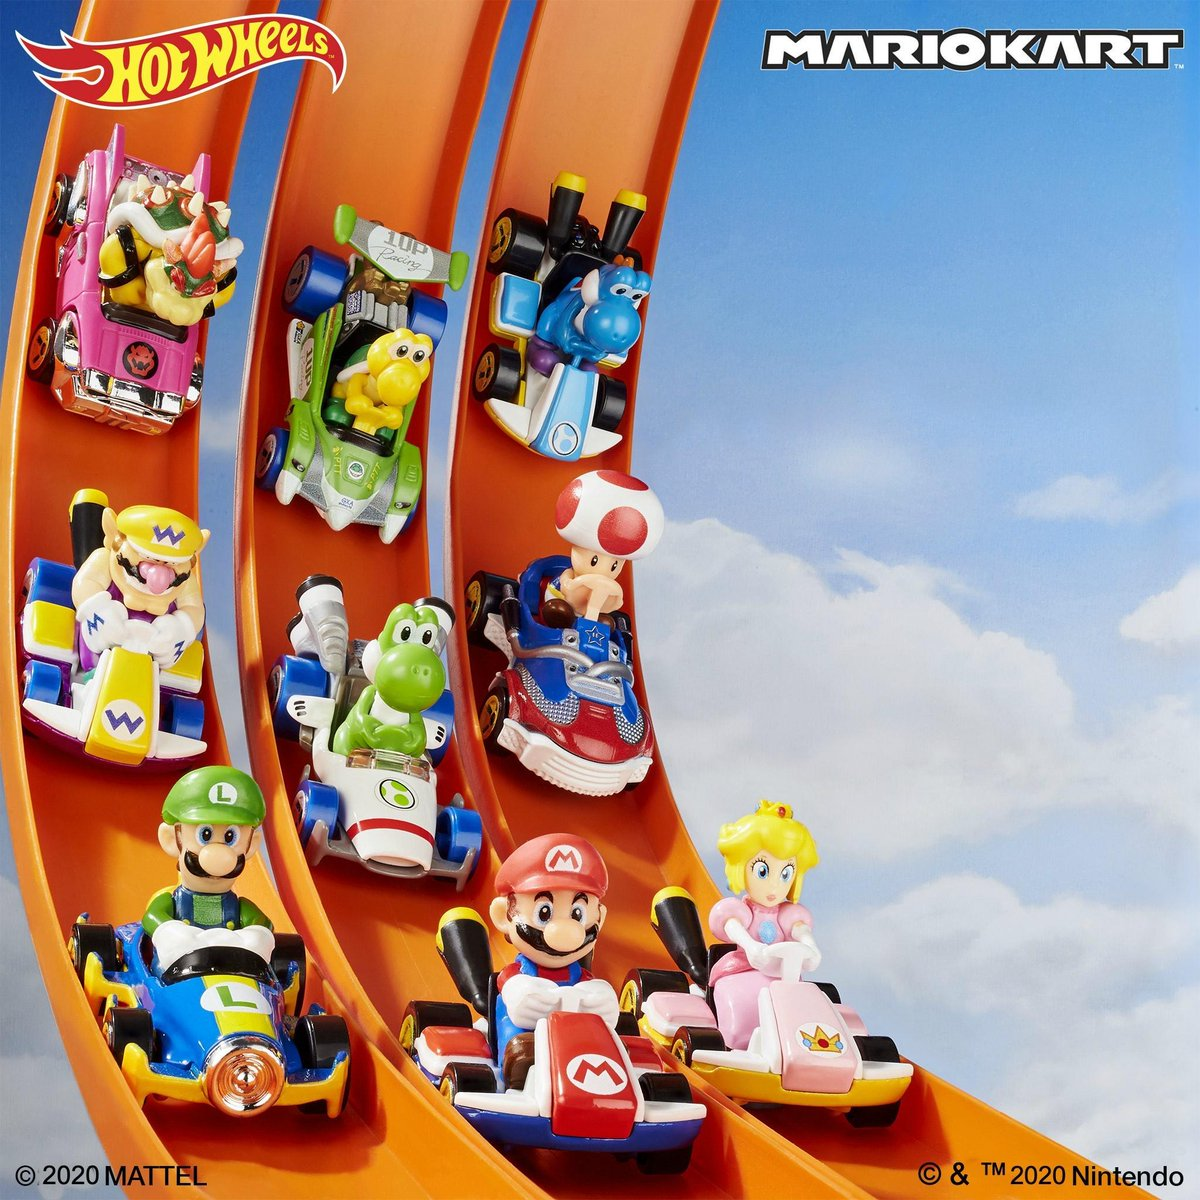 Hot Wheels On Twitter Here We Go Honored To Win Toy Of The Year In The Vehicle Category With The Hot Wheels Mario Kart Die Cast Vehicle Assortment Toty20 Hotwheels Mattel Nintendoamerica Https T Co Xoyrm0gc4y